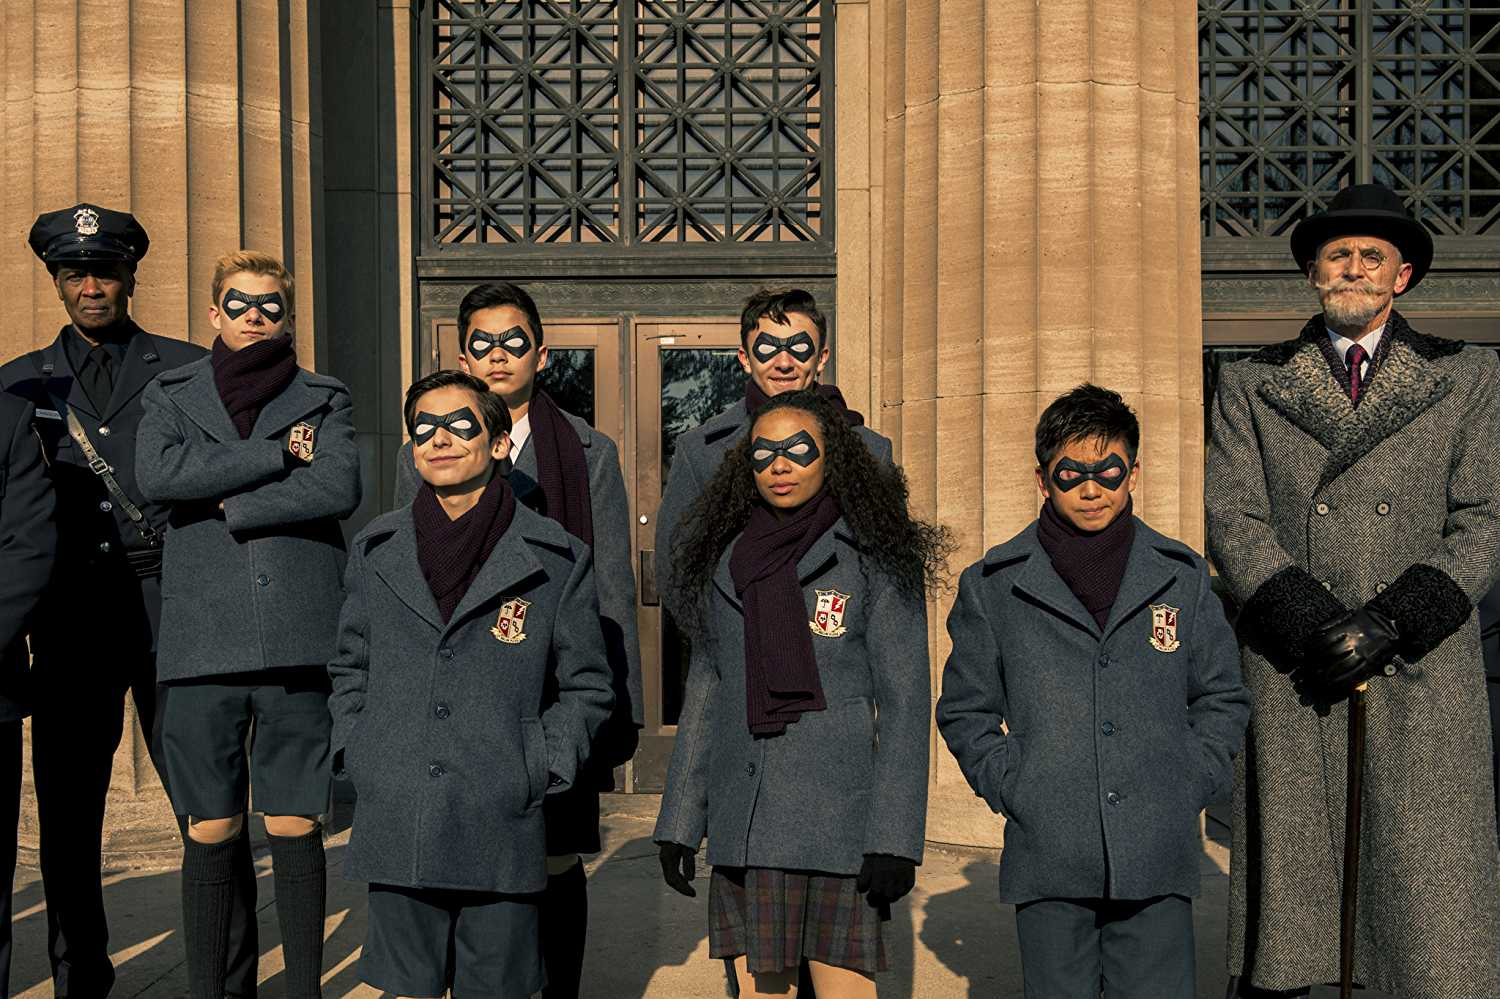 Number Five (Aidan Gallagher) and his siblings in 'The Umbrella Academy'. (Source: IMDB)